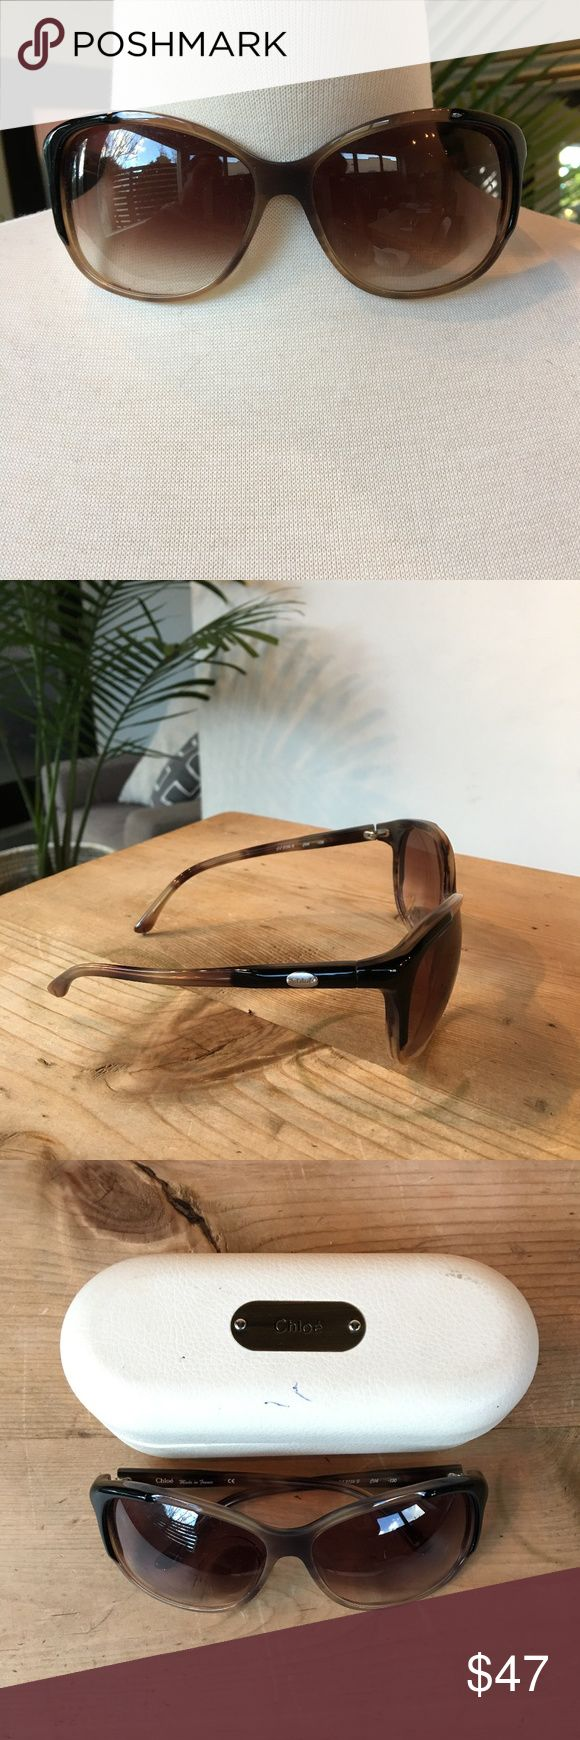 Chloe Brown Sunglasses Oversized Great Condition. No scratches on lenses.  Case does have pen marks as pictured. Chloe Accessories Glasses